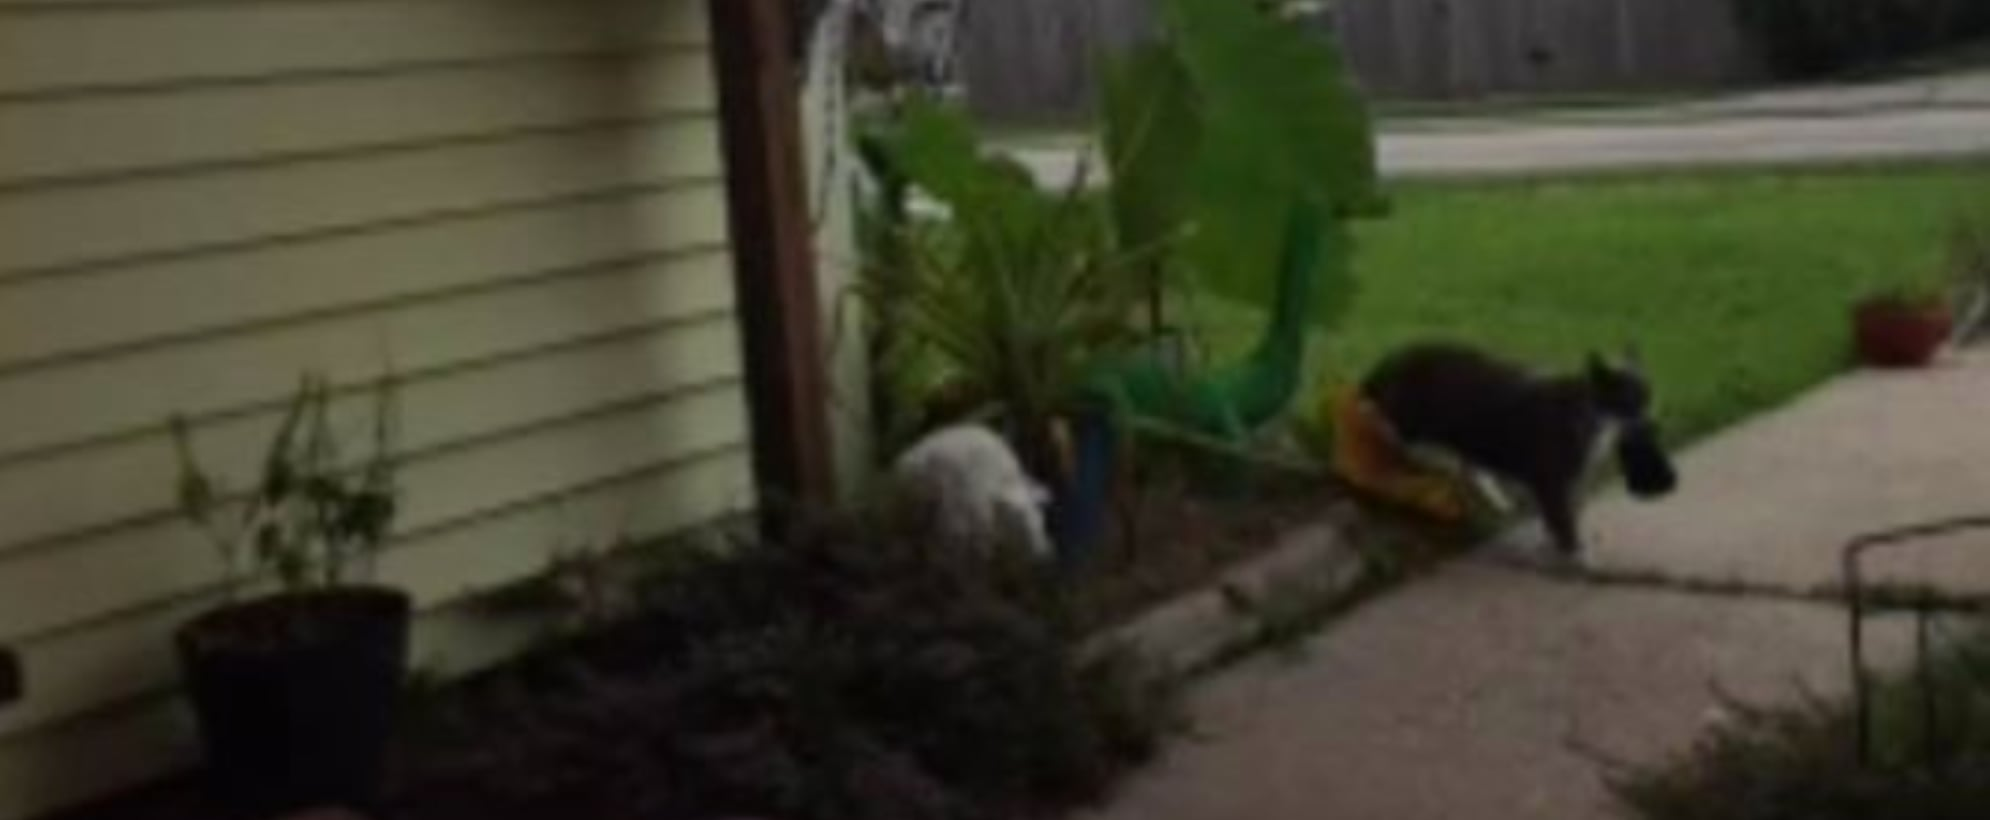 Woman Realizes Her Cat Steals the Neighbor's Laundry